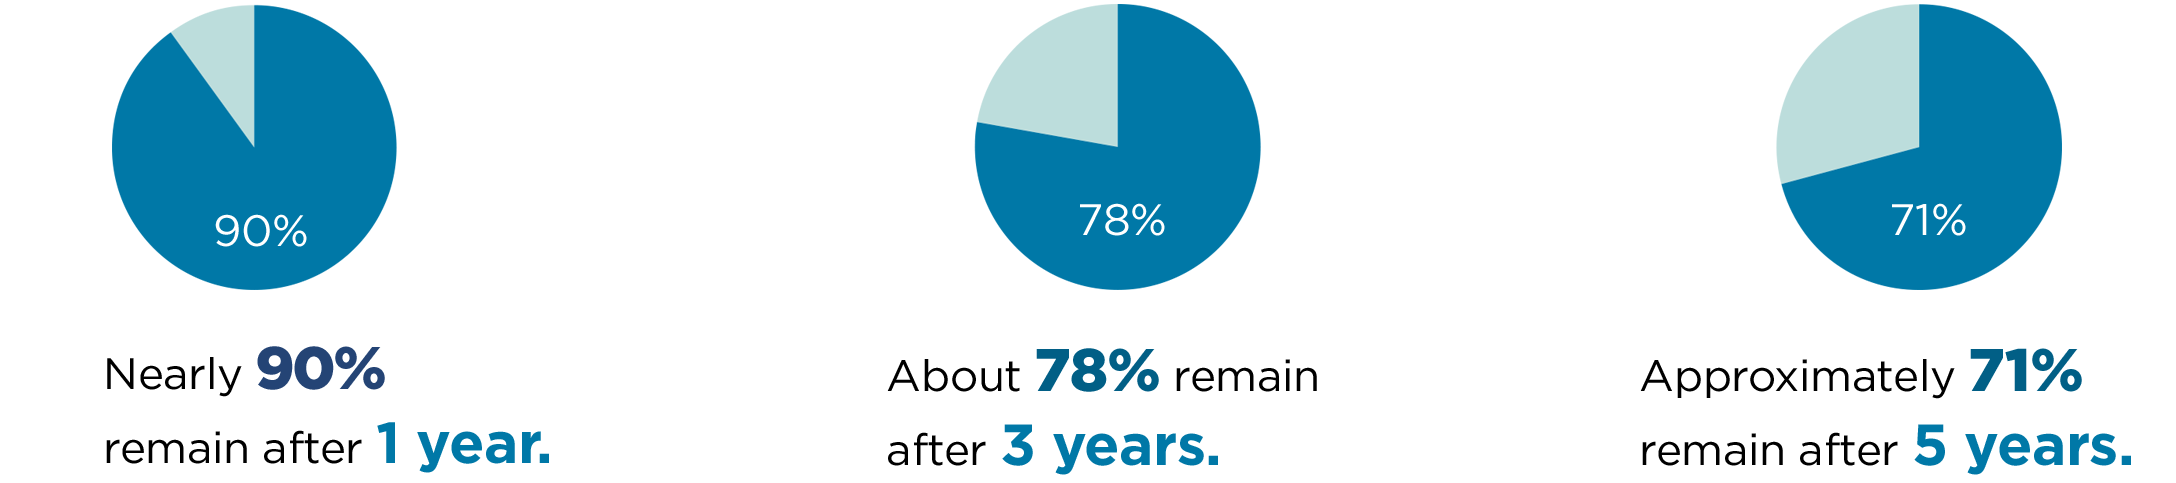 3 pie charts showing member retention from 1 year to 5 years. Nearly 90% remain after 1 year. About 78% remain after 3 years. Approximately 71% remain after 5 years.